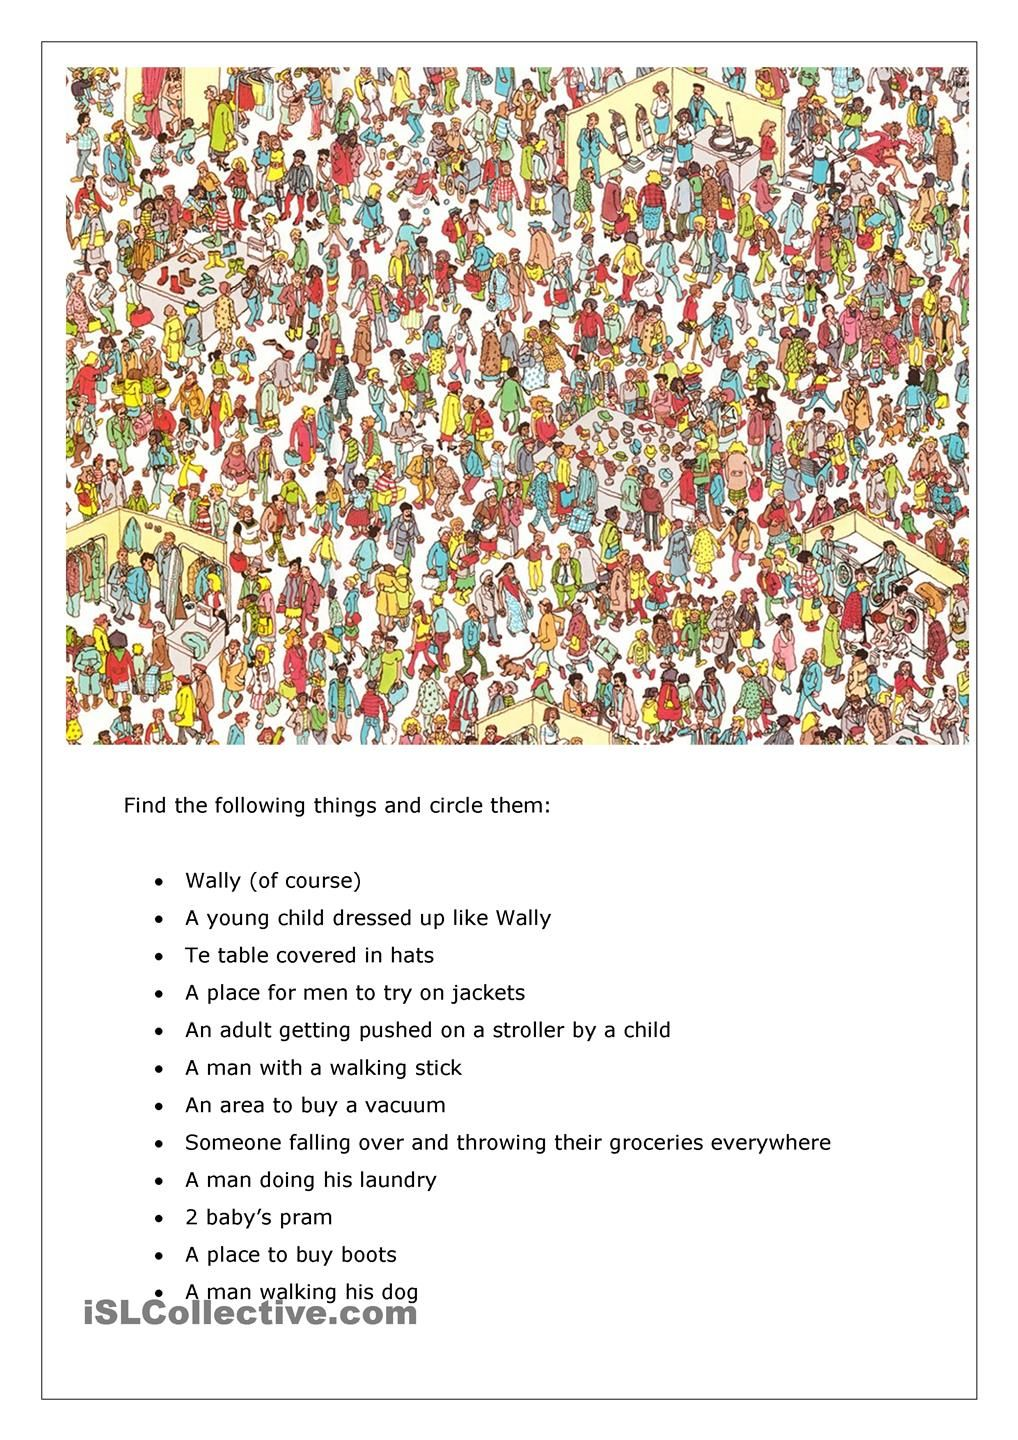 Terrible image intended for where's waldo printable